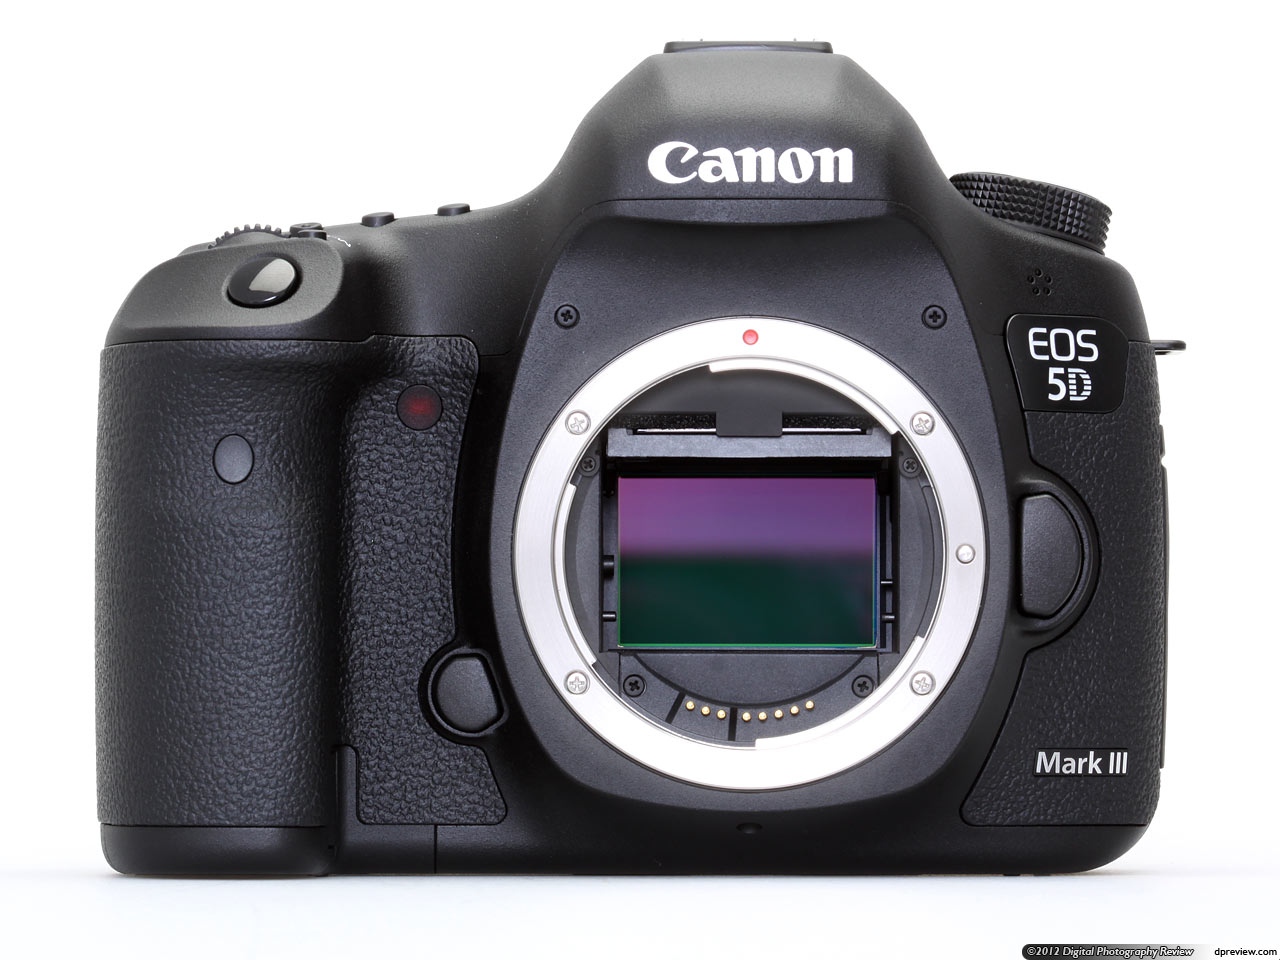 Eos 5d Mark Iii clipart #19, Download drawings